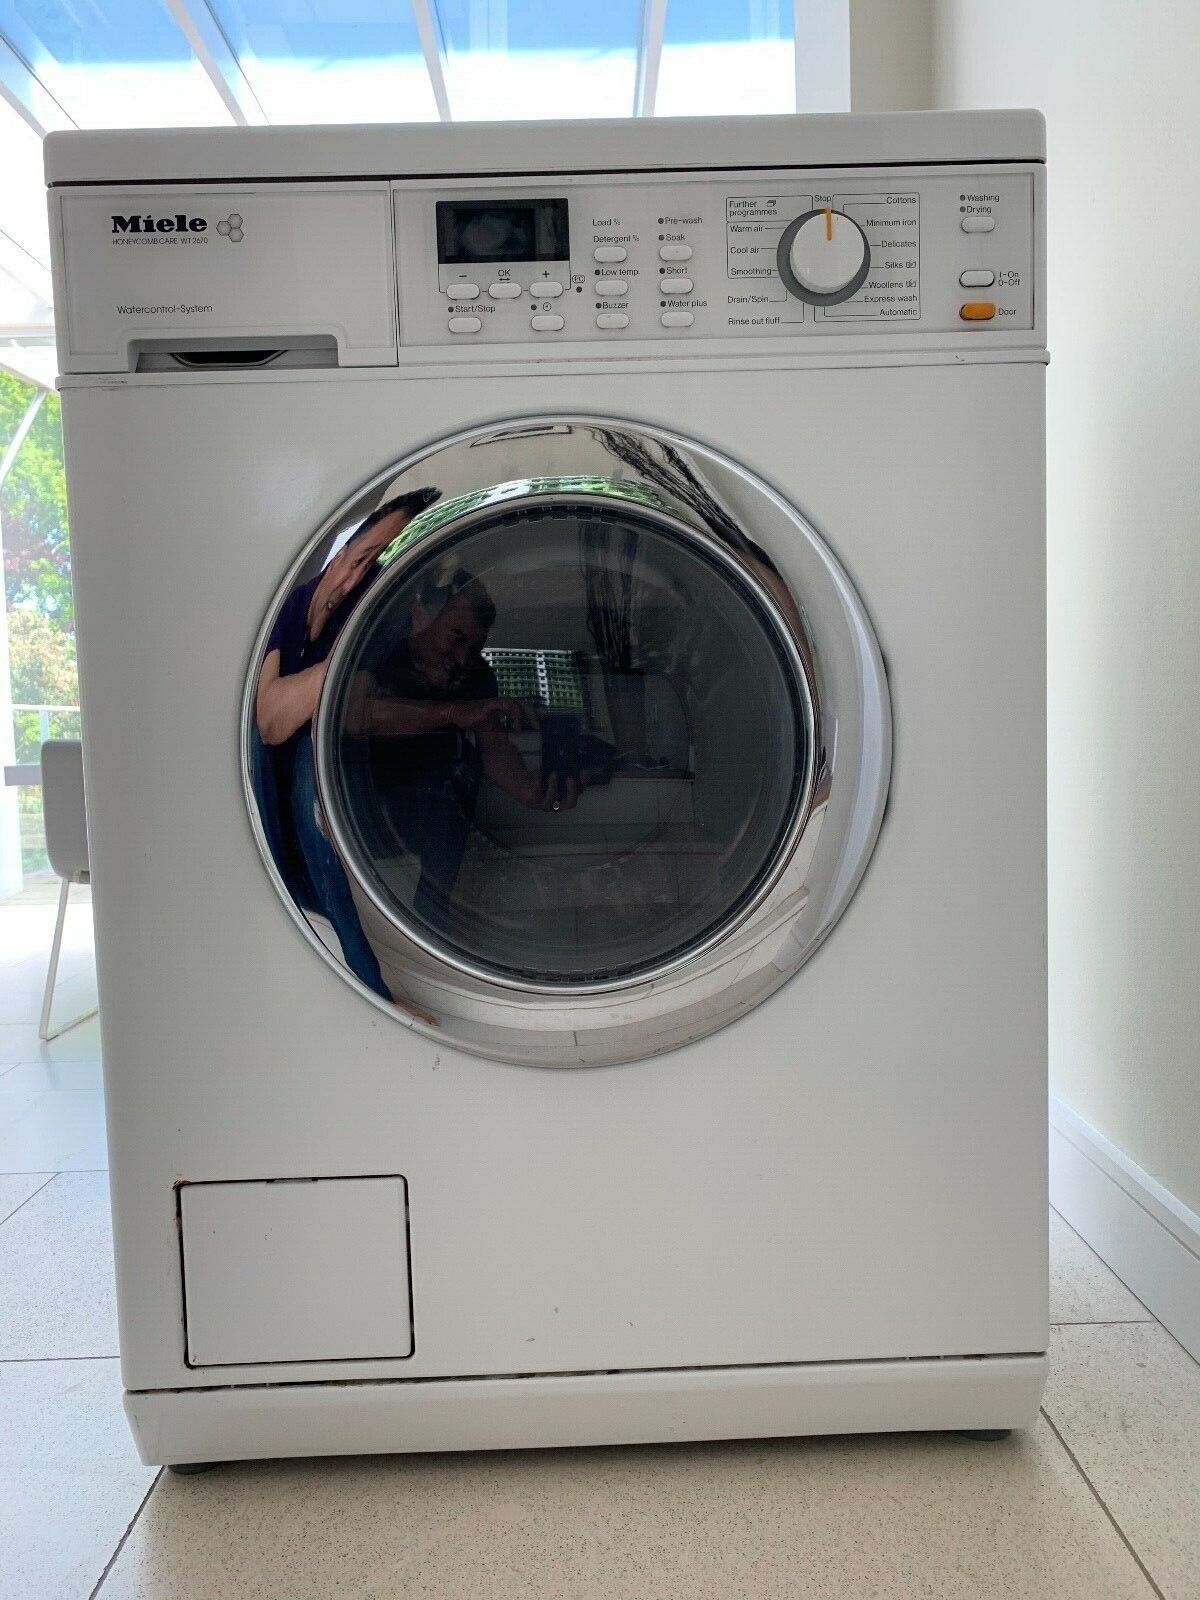 Miele Washer Dryer, WT2670, comes with ~9 months warranty